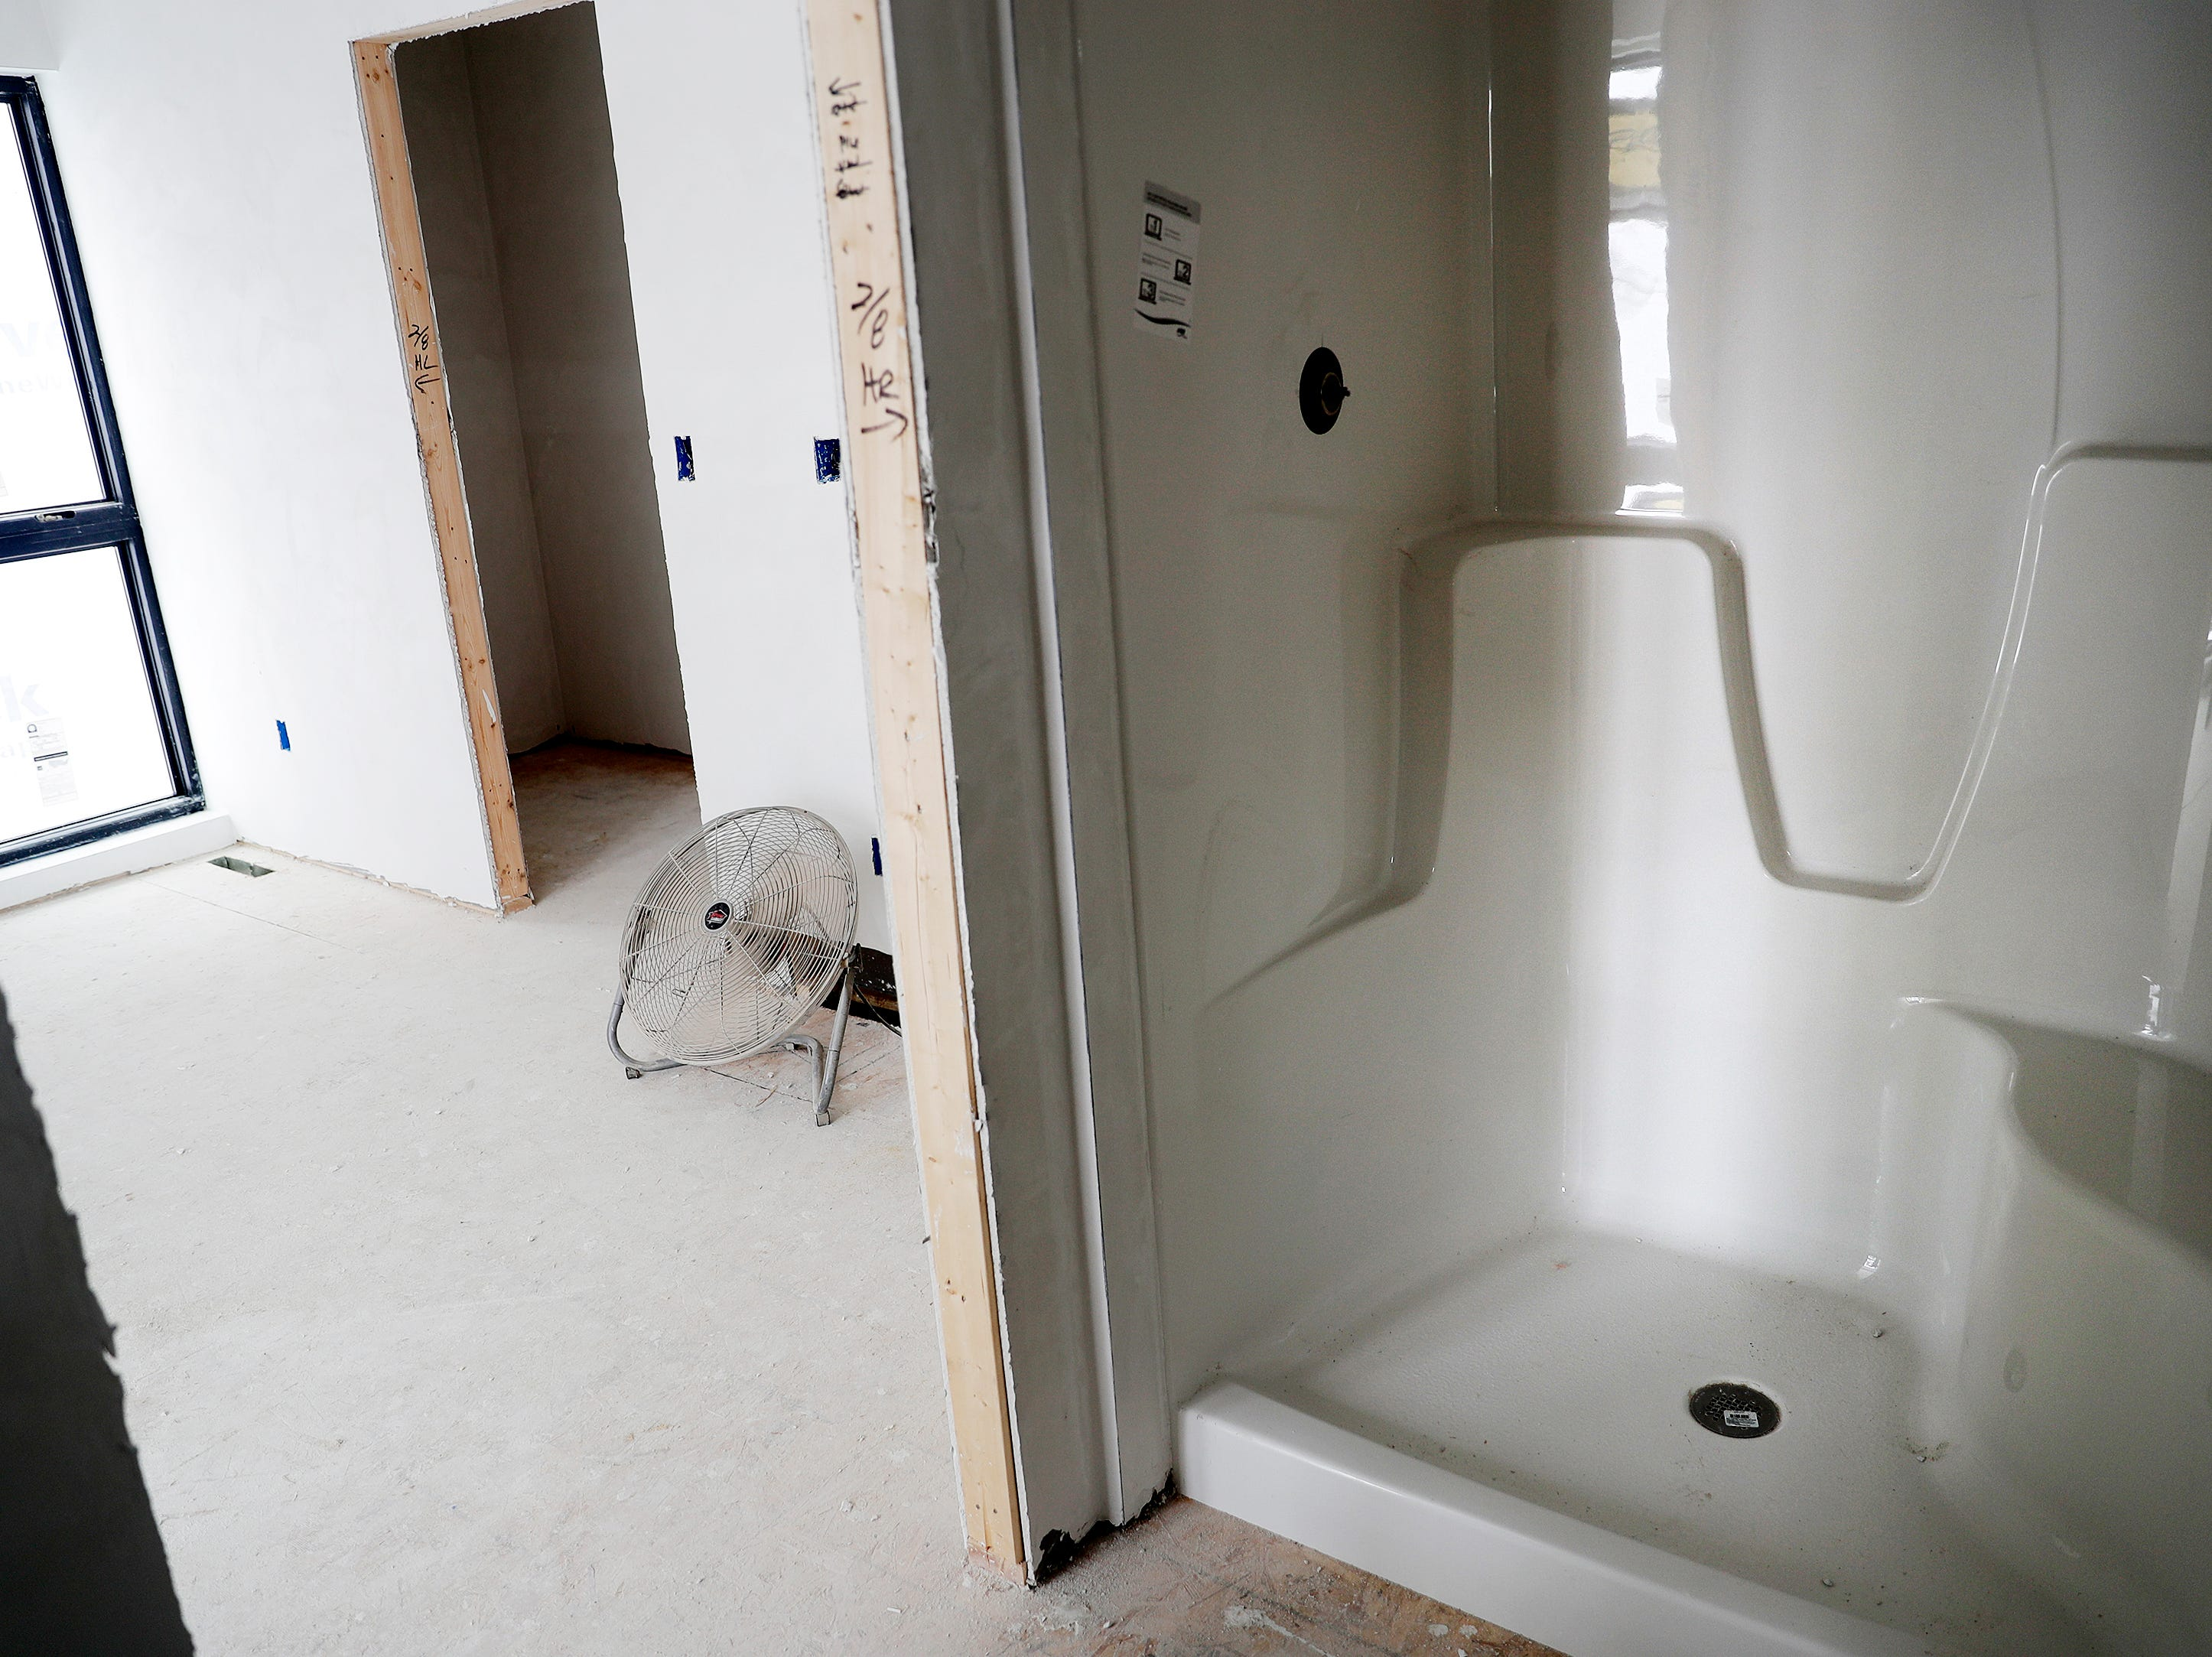 The master bathroom is shown in a unit of the under-construction townhouses on the corner of Van Buren and Cherry streets on Tuesday, February 26, 2019 in Green Bay, Wis.